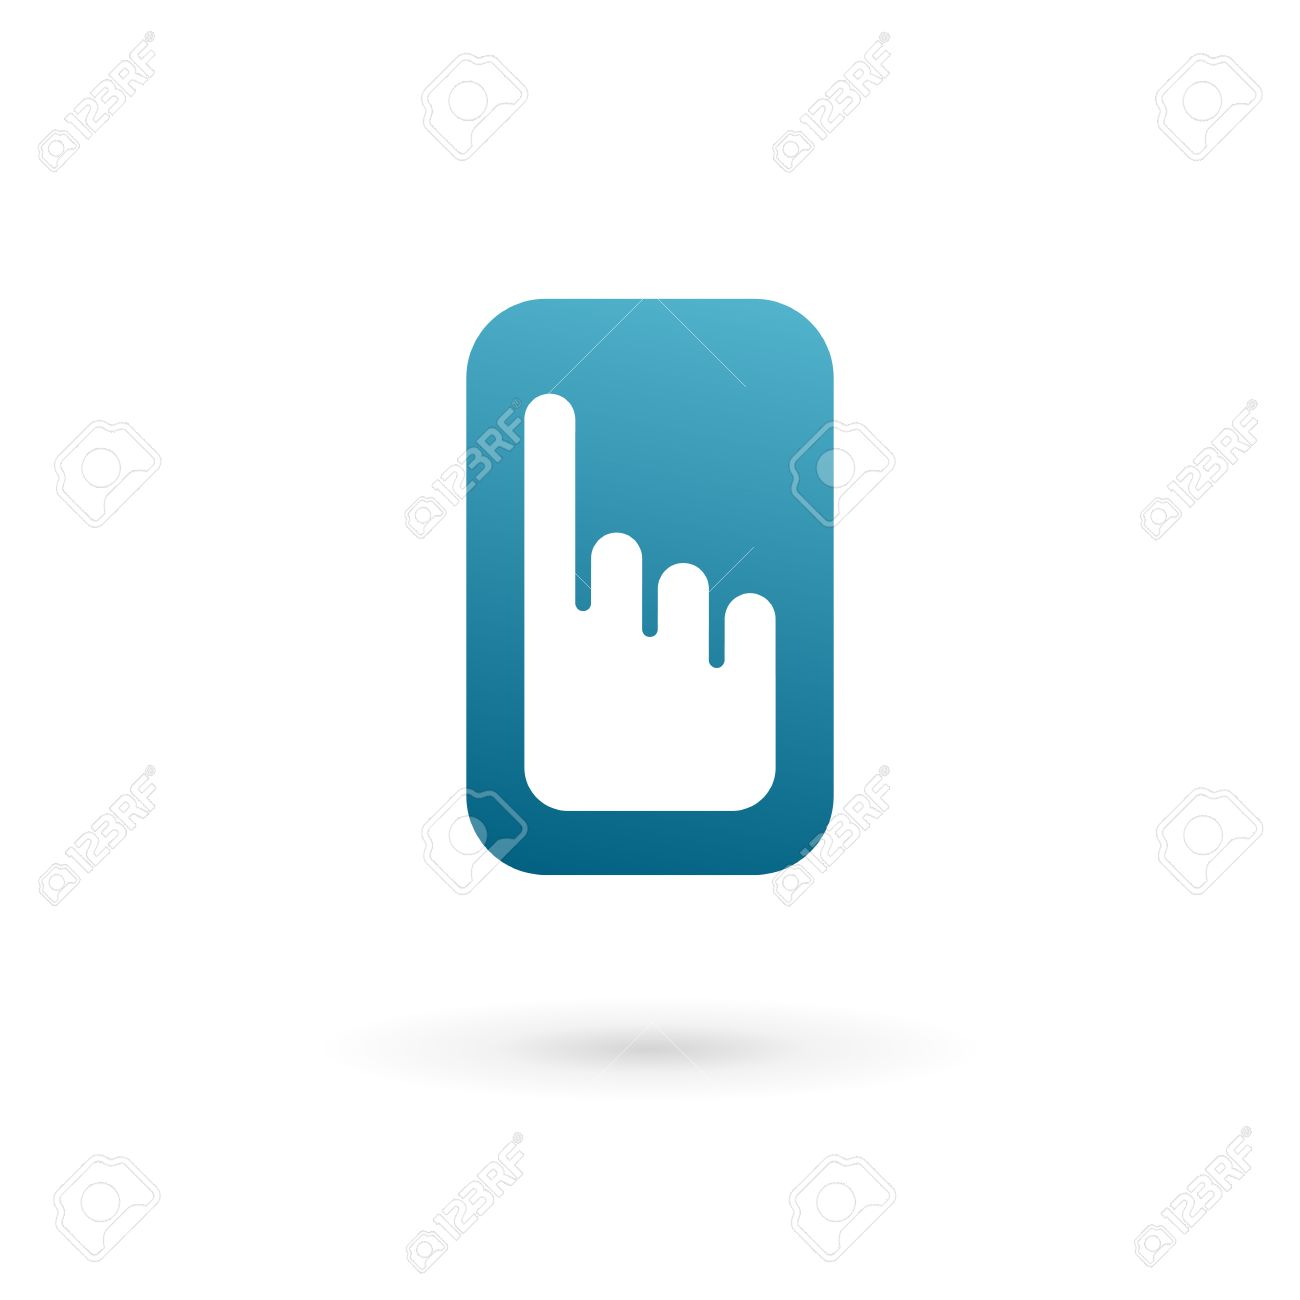 Mobile phone hand touch screen app logo icon design template